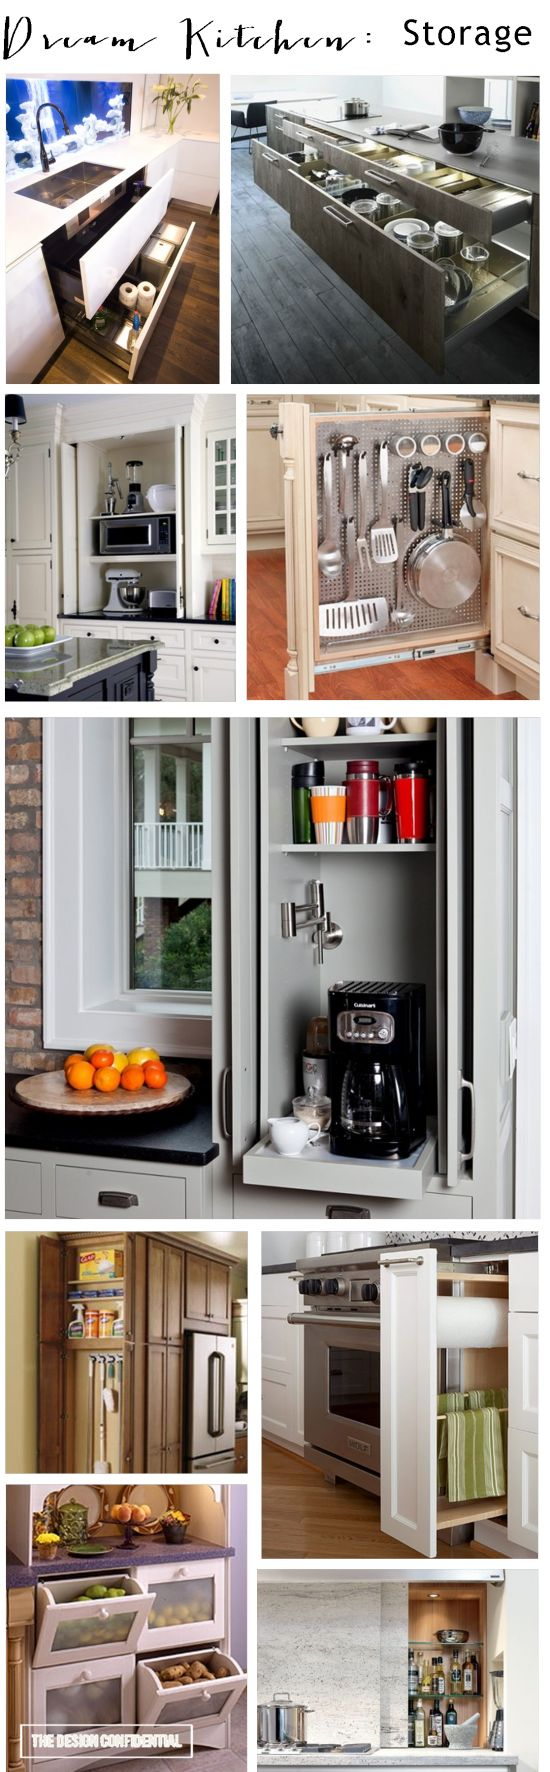 40 clever storage ideas that will enlarge your space for Clever kitchen ideas